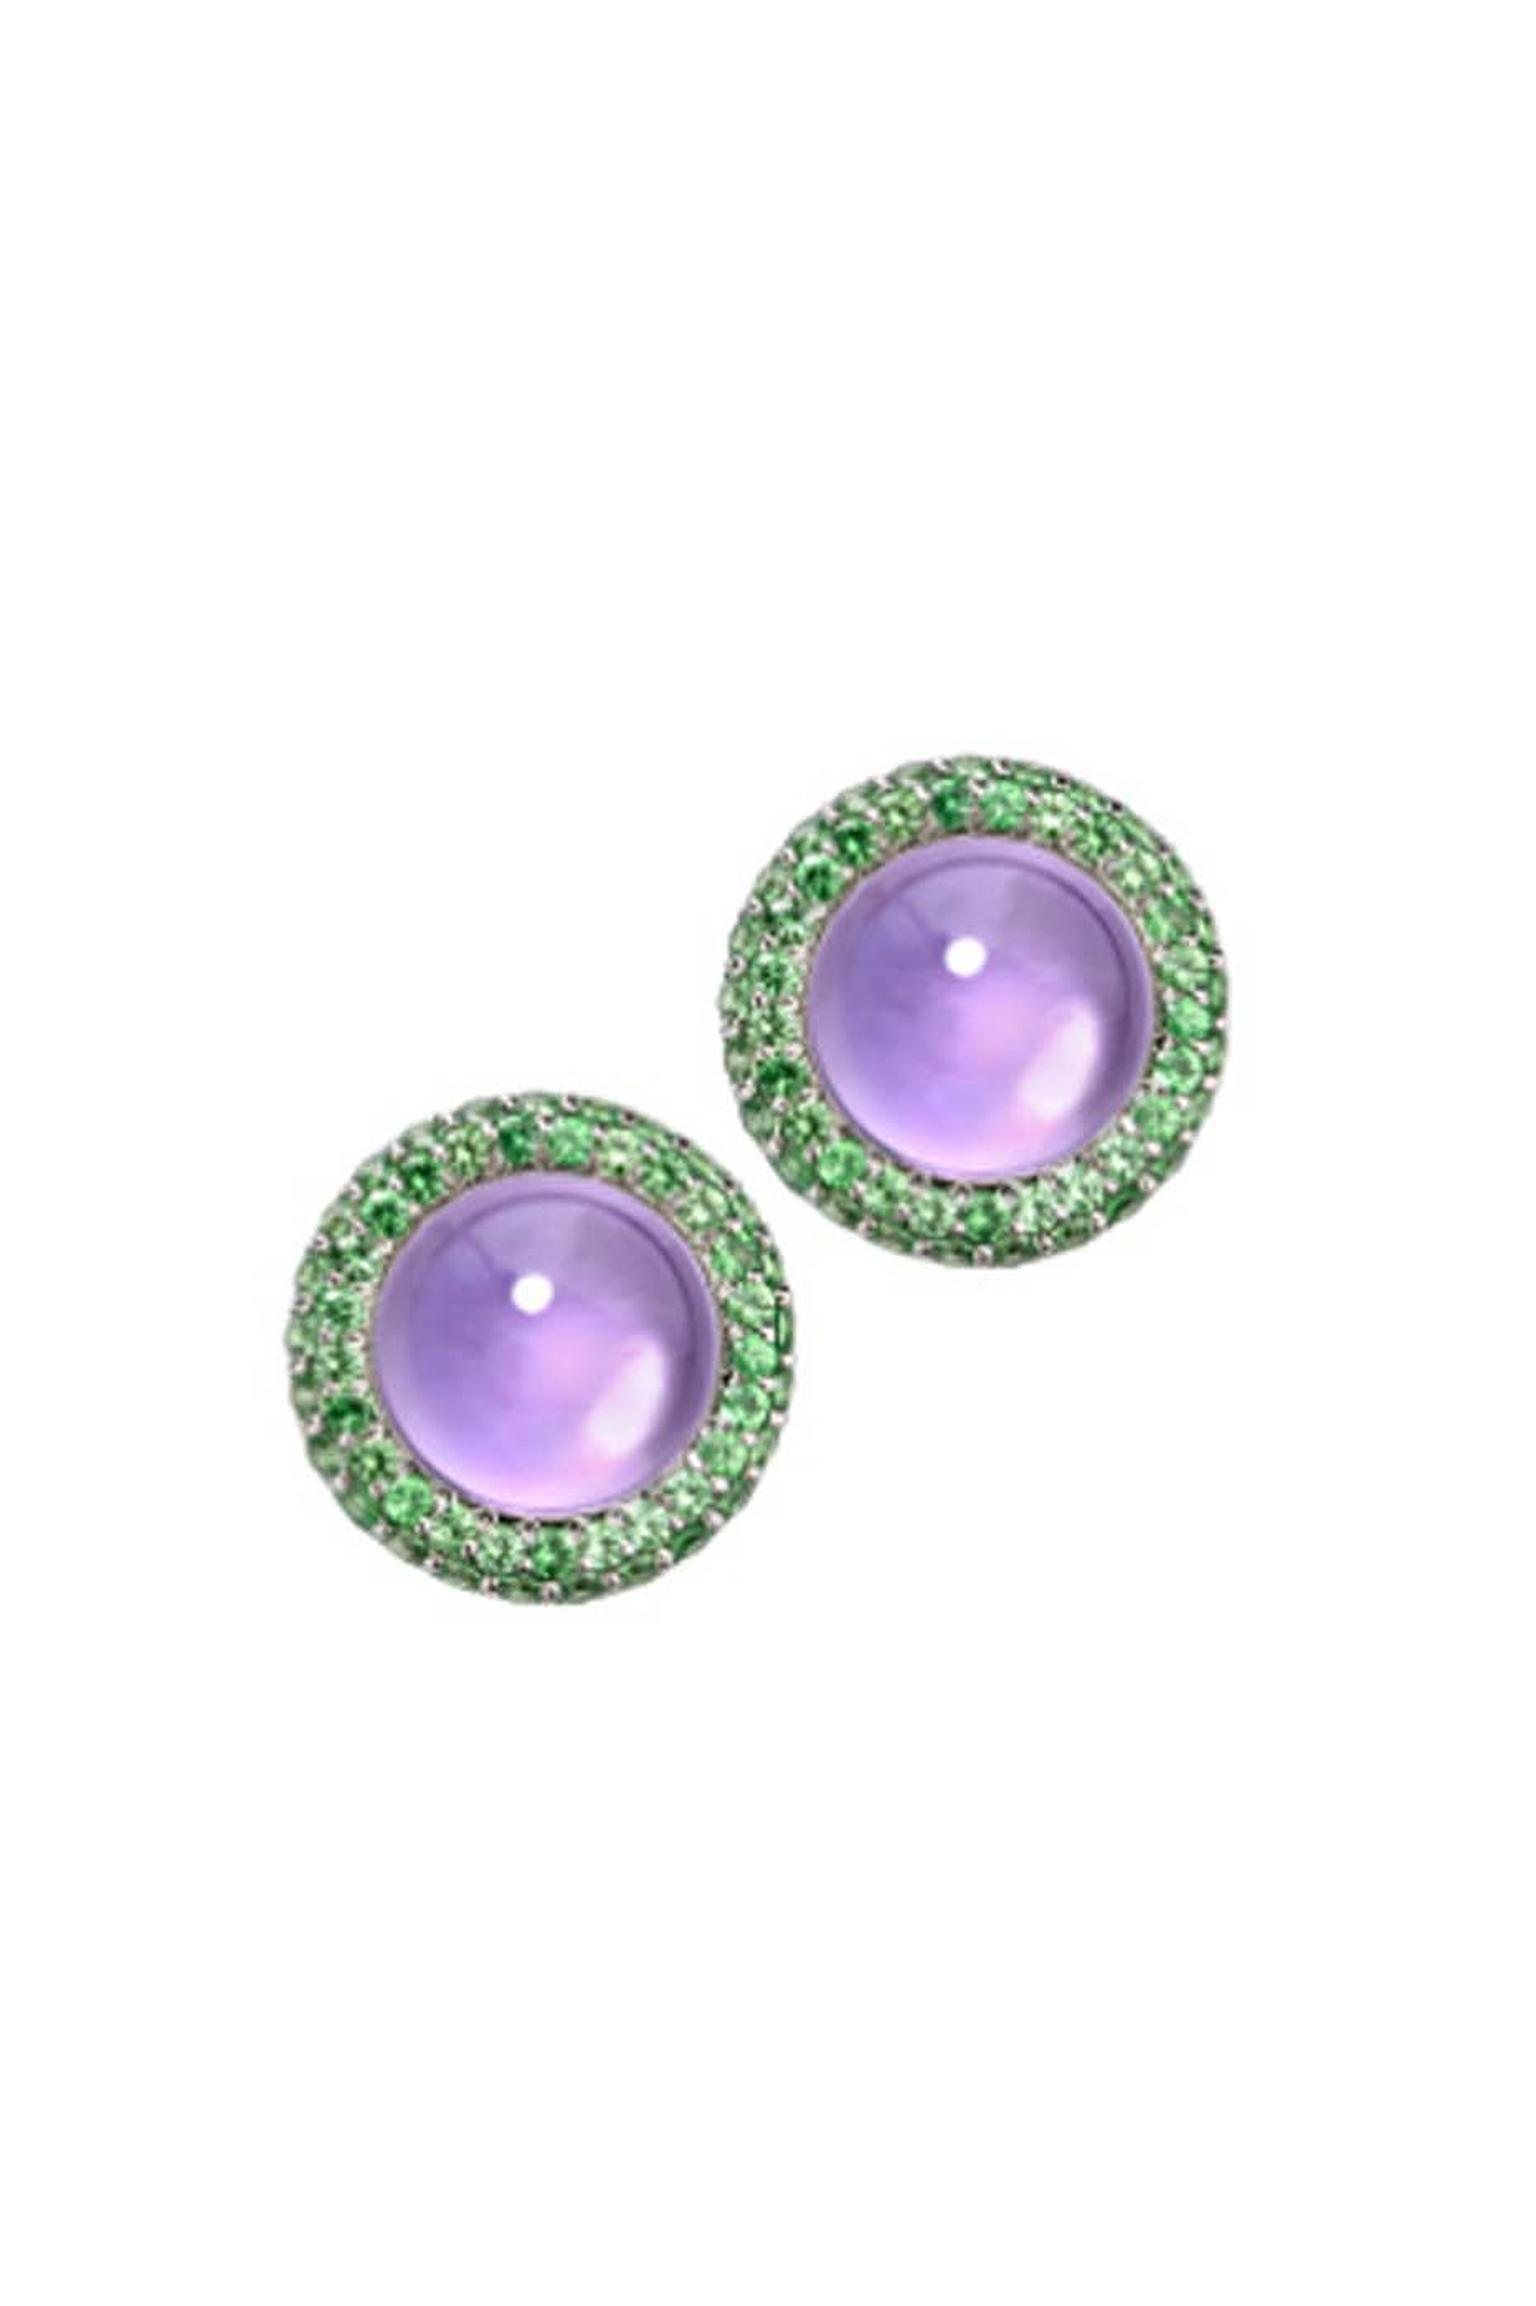 Elena Carrera Fusion collection earrings in rose gold with central amethyst gemstones and interchangeable green tsavorite jackets.